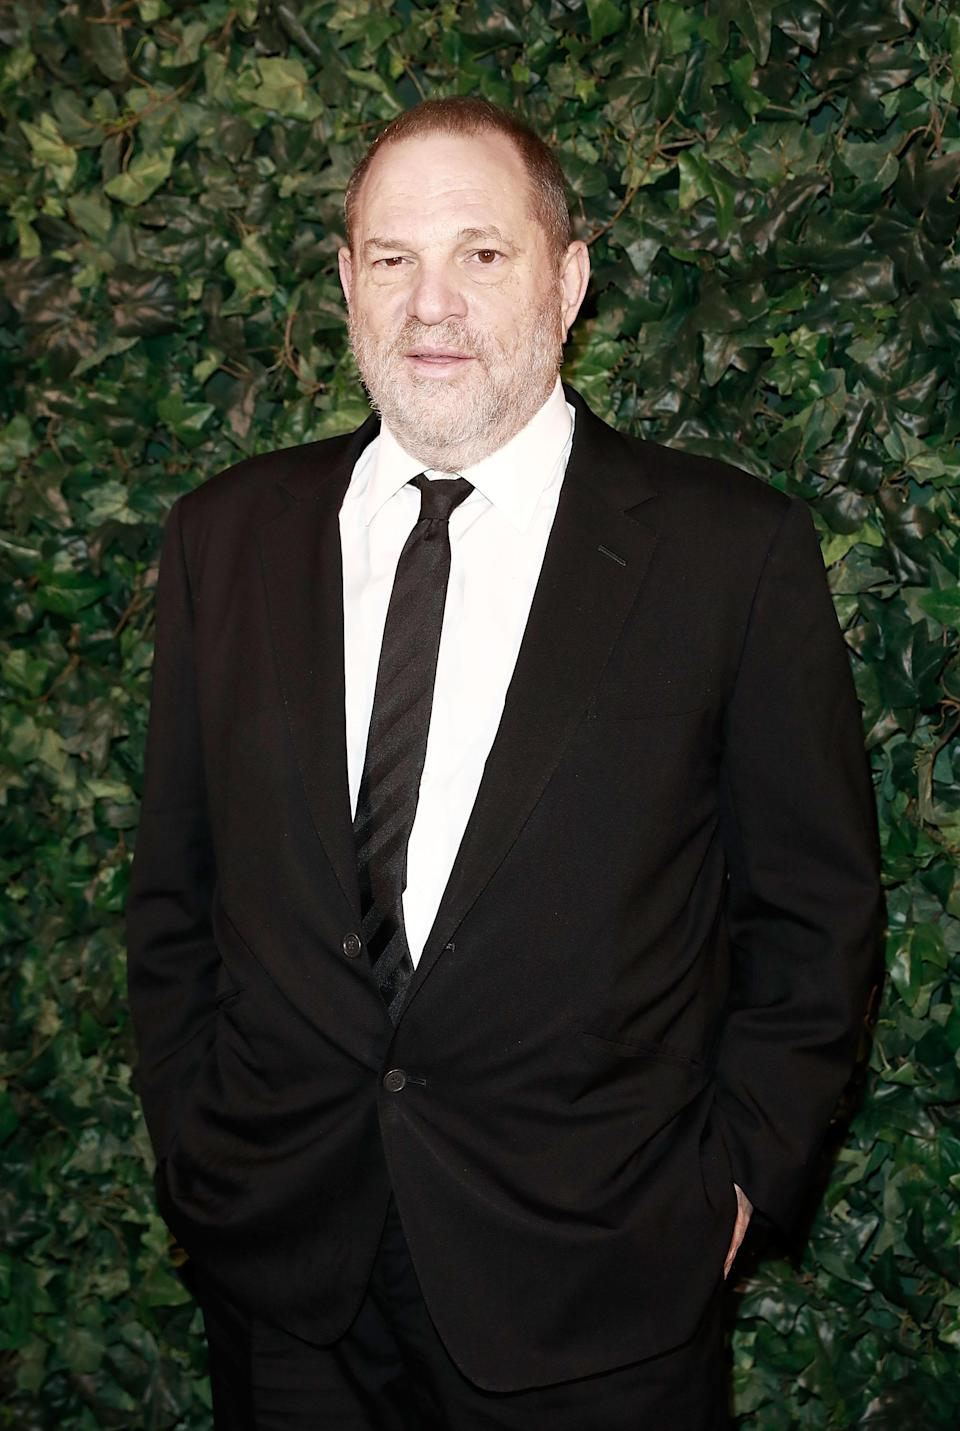 Harvey Weinstein attends a pre-BAFTA party hosted by Charles Finch and Chanel at Annabel's on Feb. 11, 2017, in London. (Photo: Getty Images)